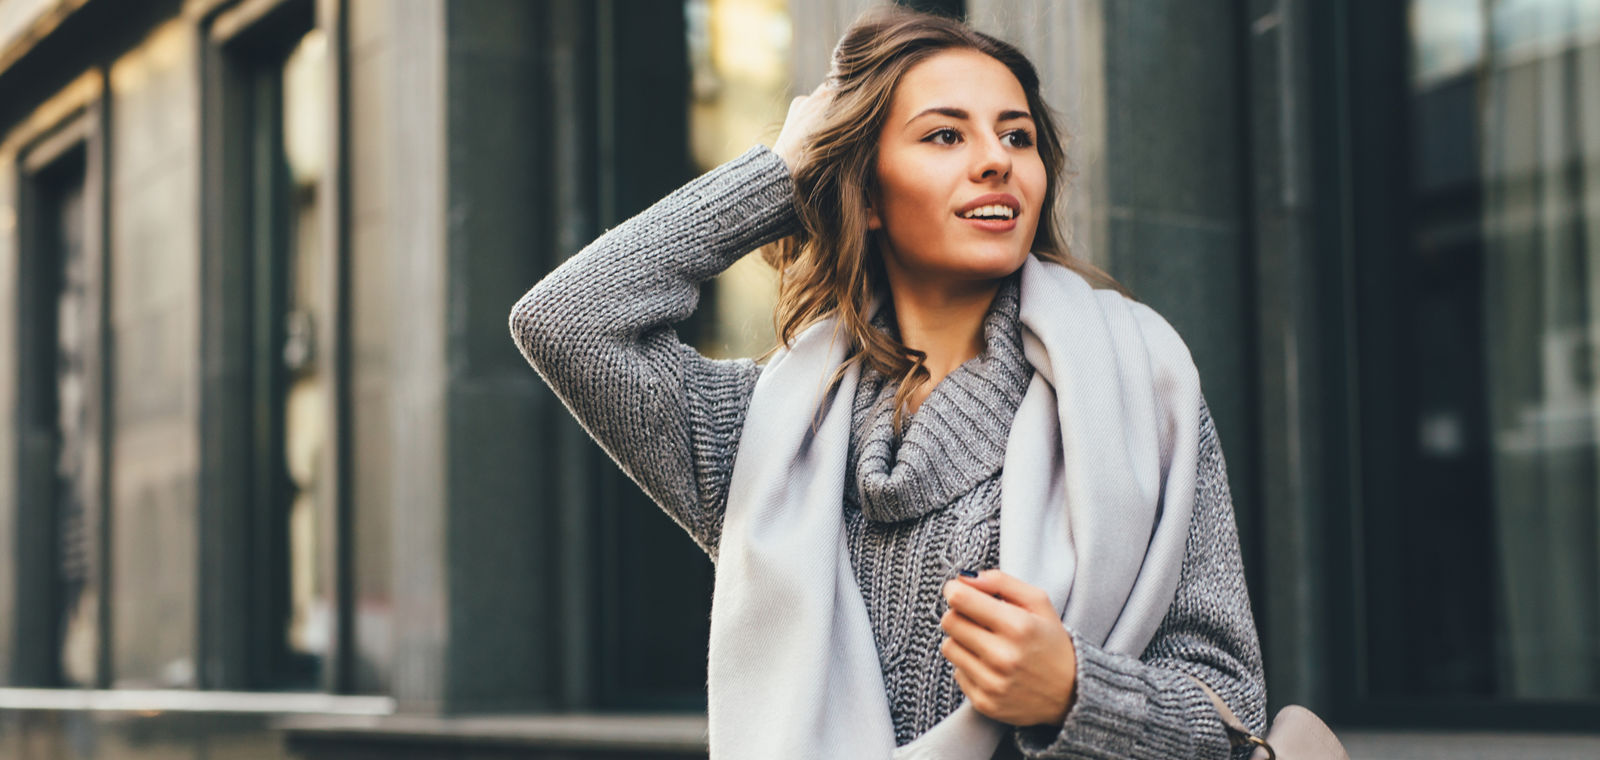 Talbott Hotel_Blog_Bundle Up, Baby! How to Pack for a Chicago Winter Vacay